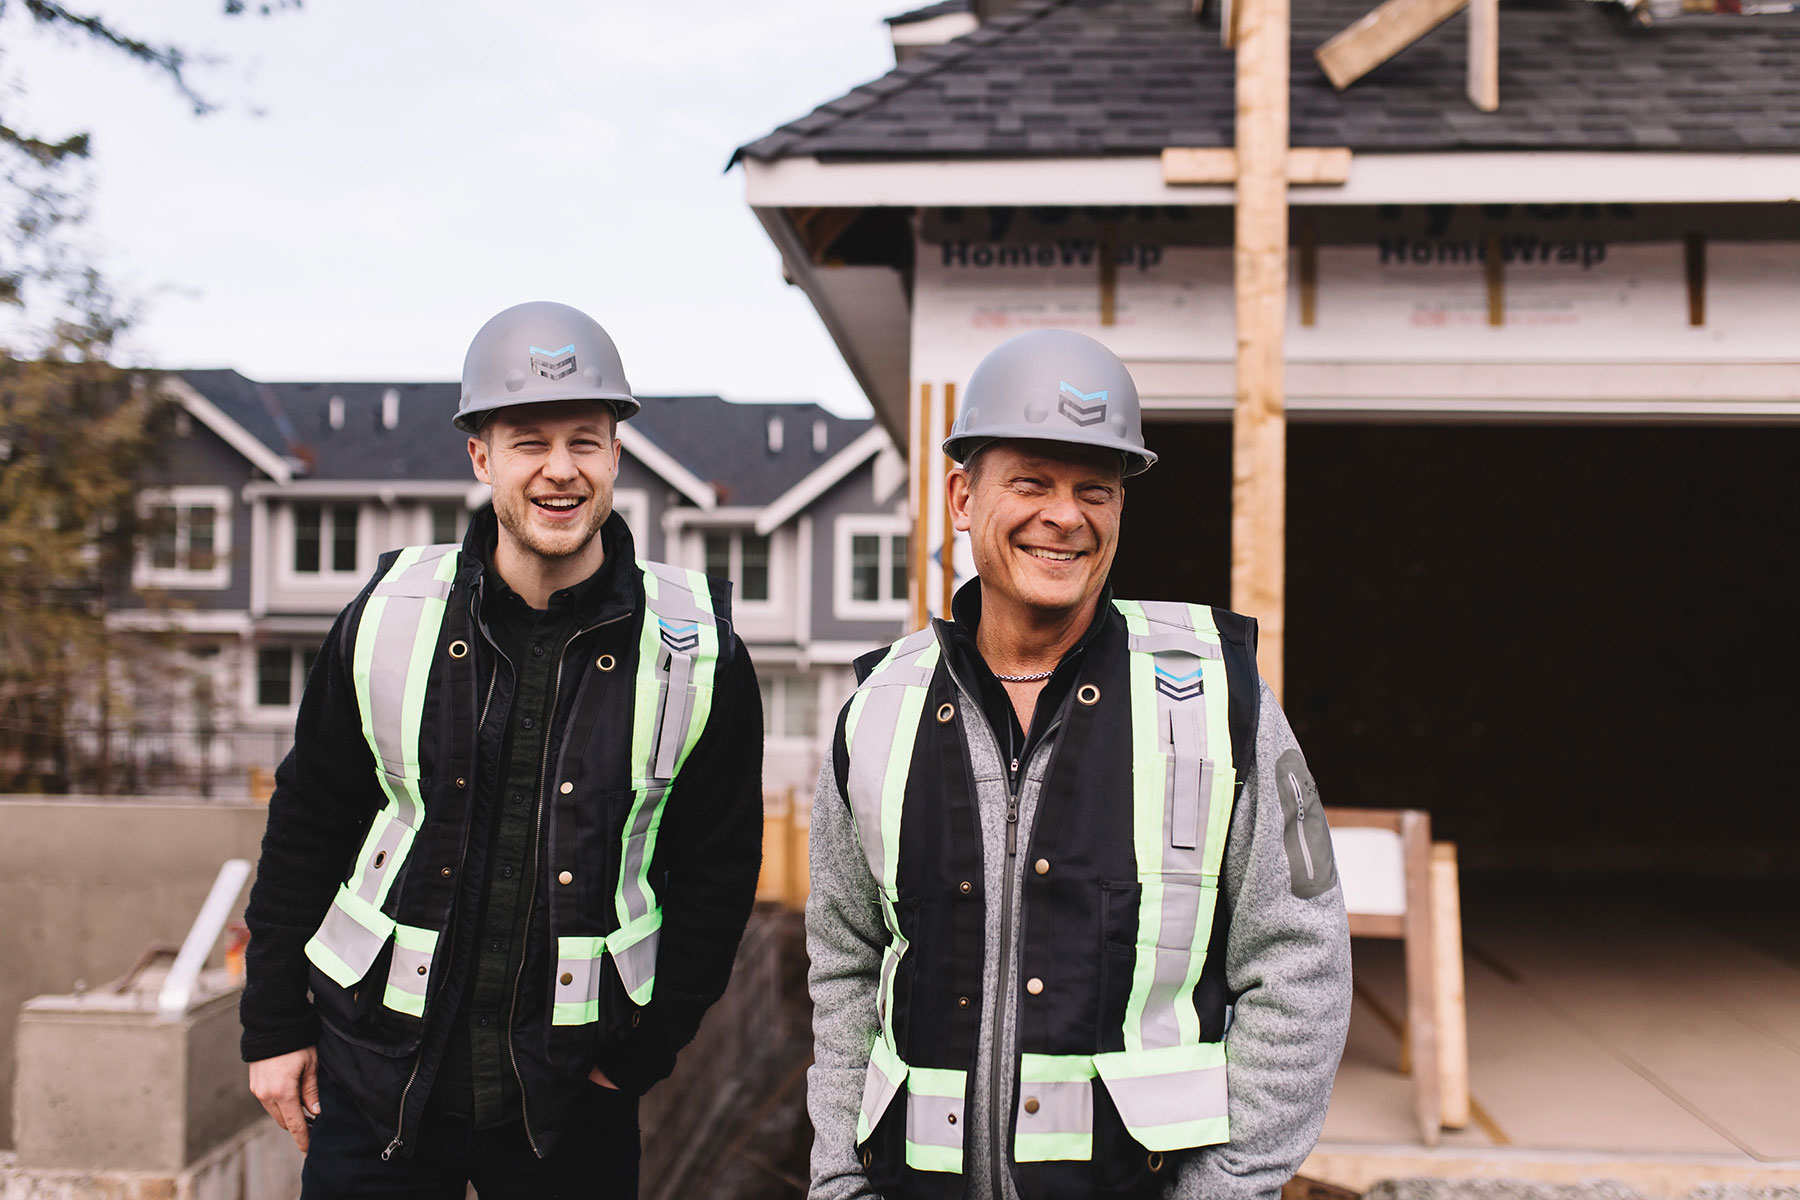 Two construction industry workers on the jobsite